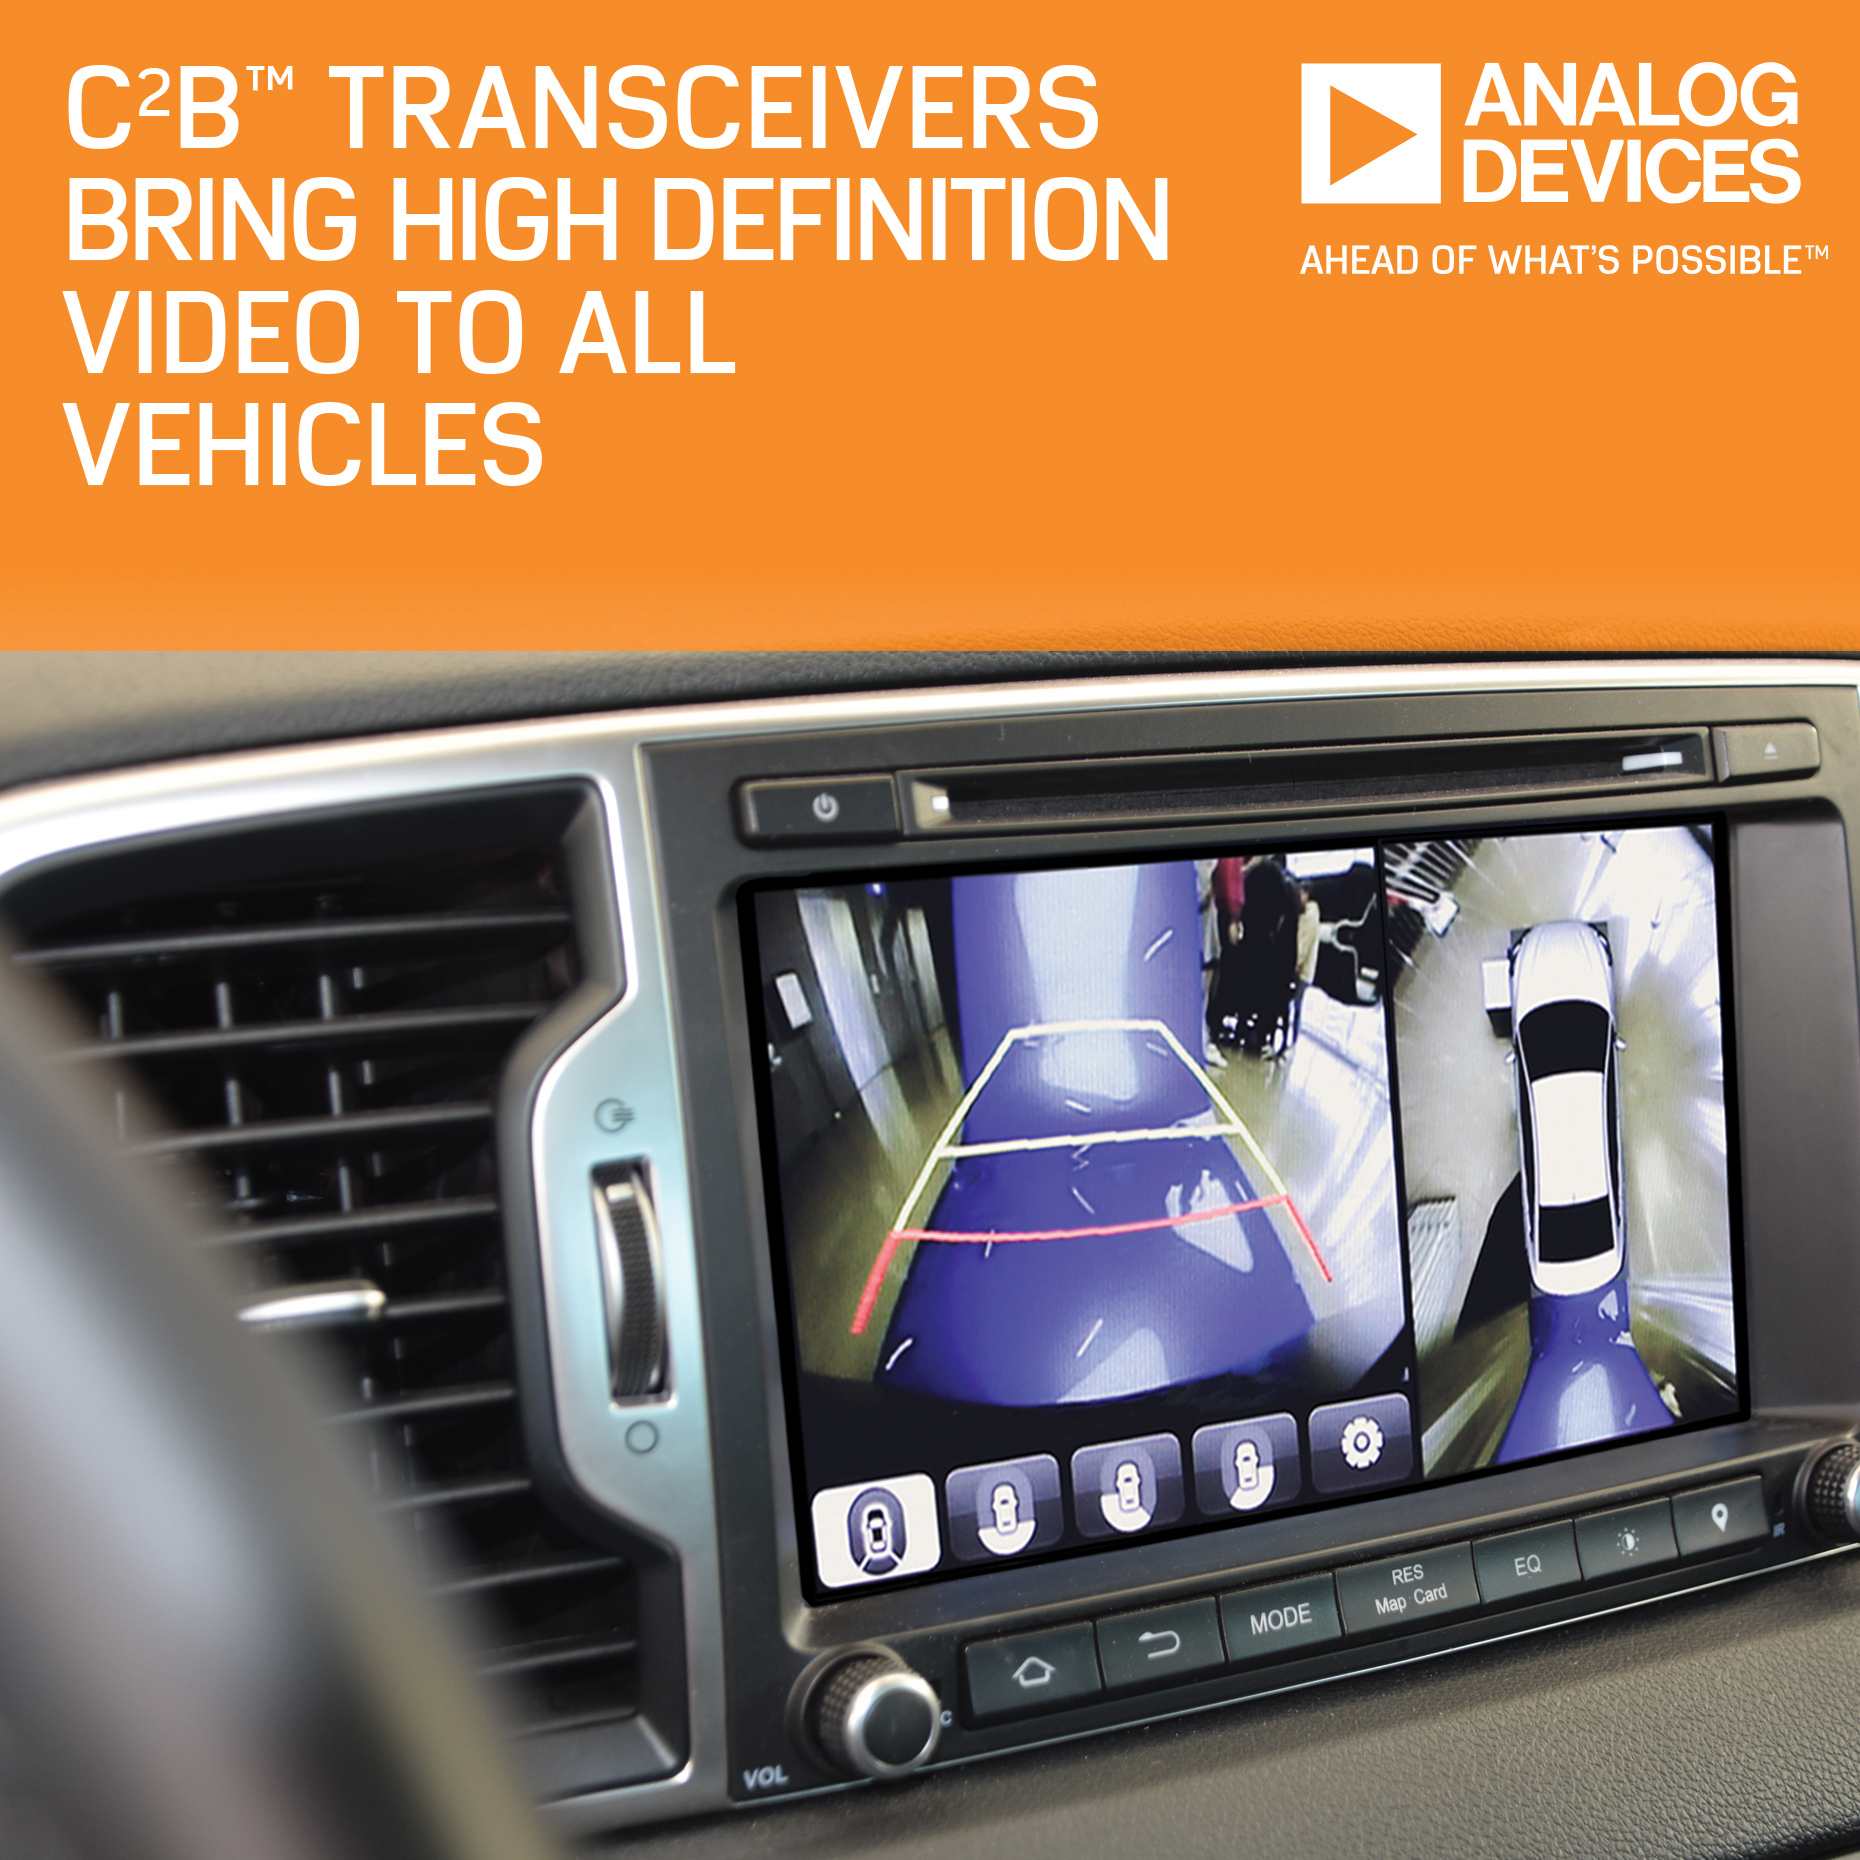 Analog Devices' Transceivers Bring High-Def Video via Existing